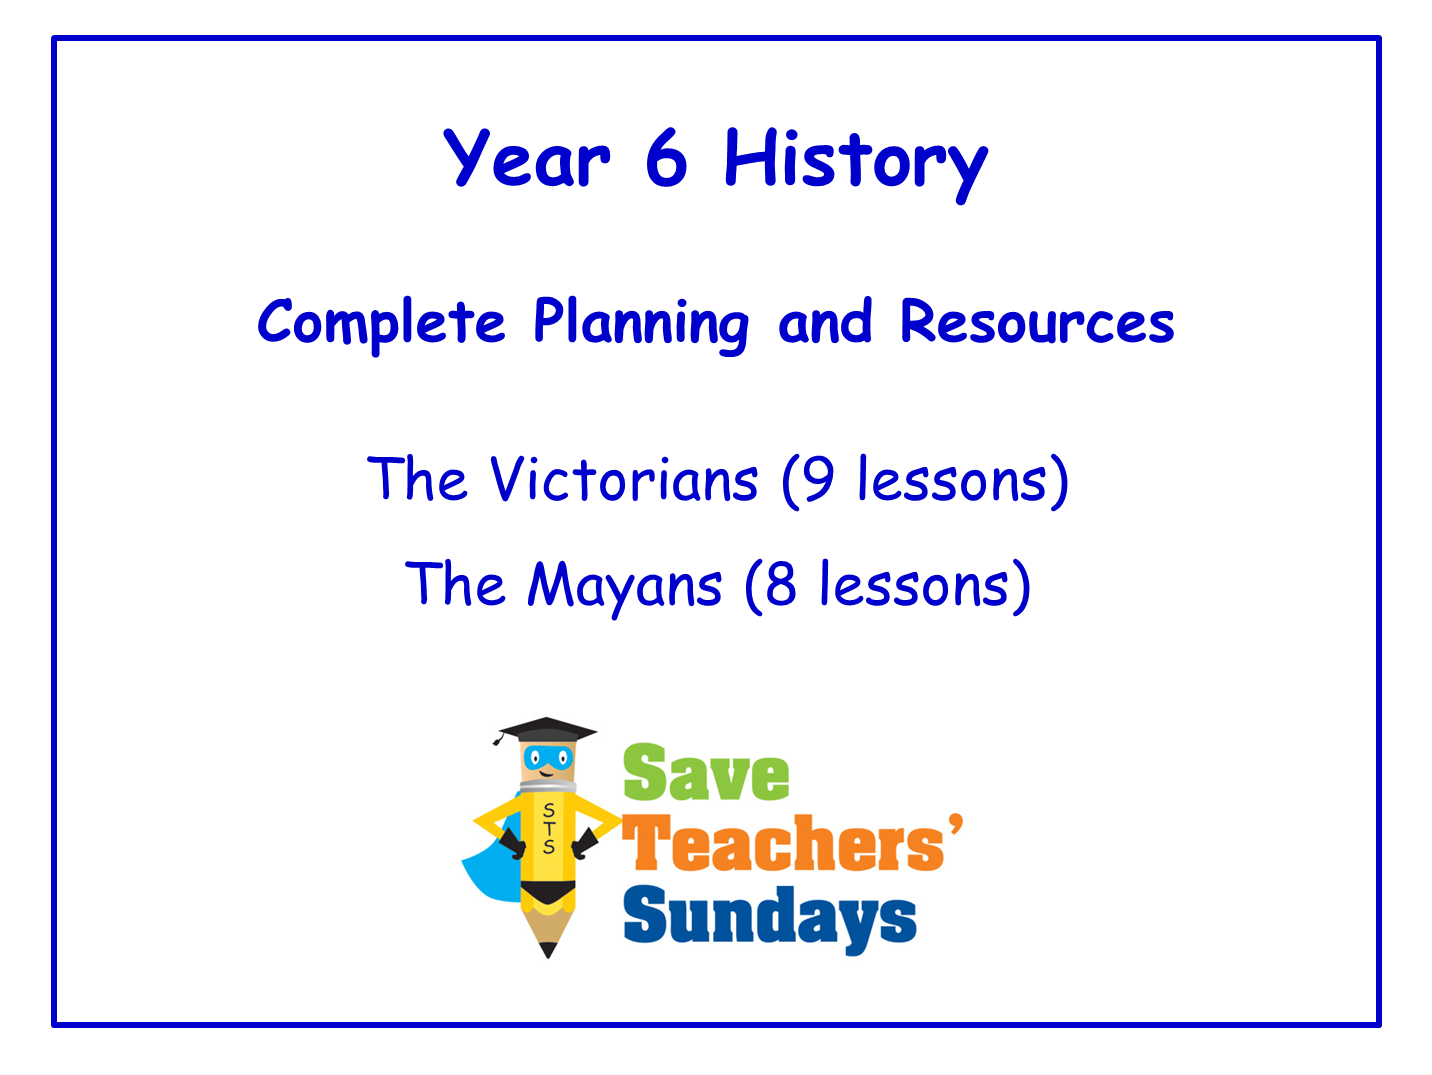 Year 6 History Planning and Resources